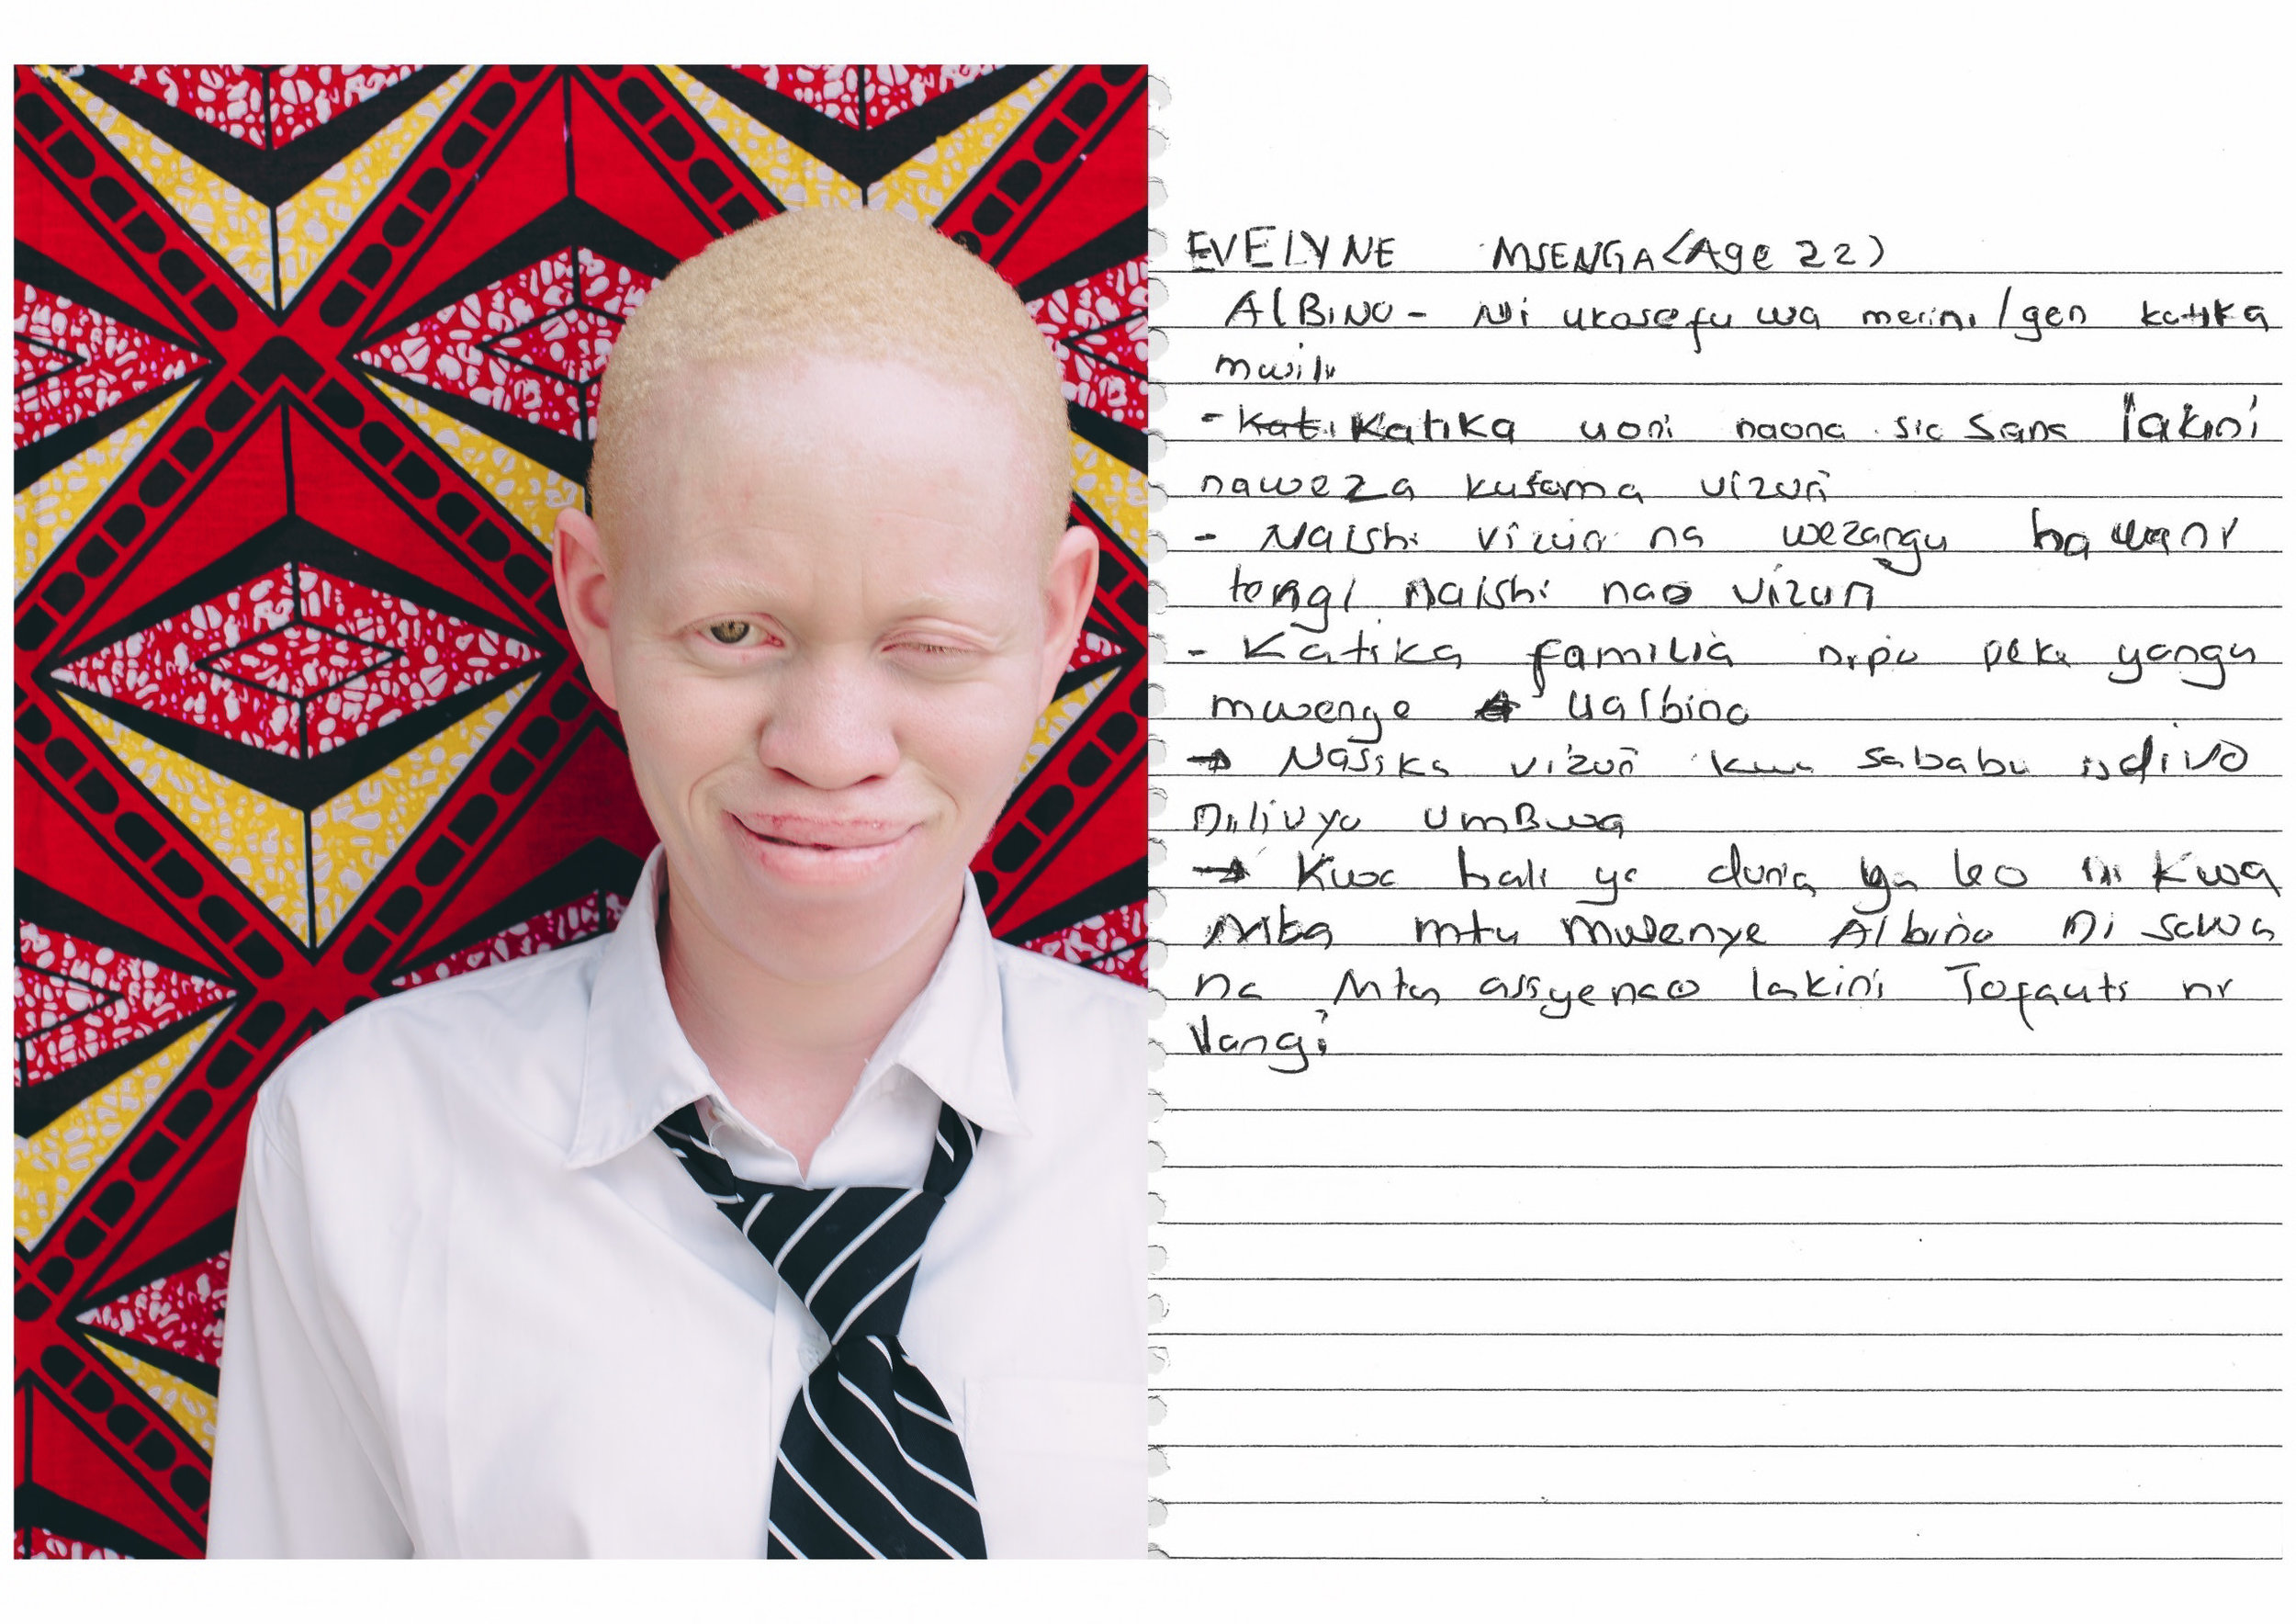 Evelyne Msenga (22 years old)    I am in Form 6 at St. Anne Marie    - Albinism, a condition whereby one lacks melanin in the body.    - I can see, though not very clearly, but I can ready very well.    - I live very well with my schoolmates, they do not tease me.    - I am in the only person in my family who has albinism.    - I feel good to be this way, because this is the way God created me.    - In today's world, people with albinism are considered unequal with other people who do not have albinism, the situation is still challenging.